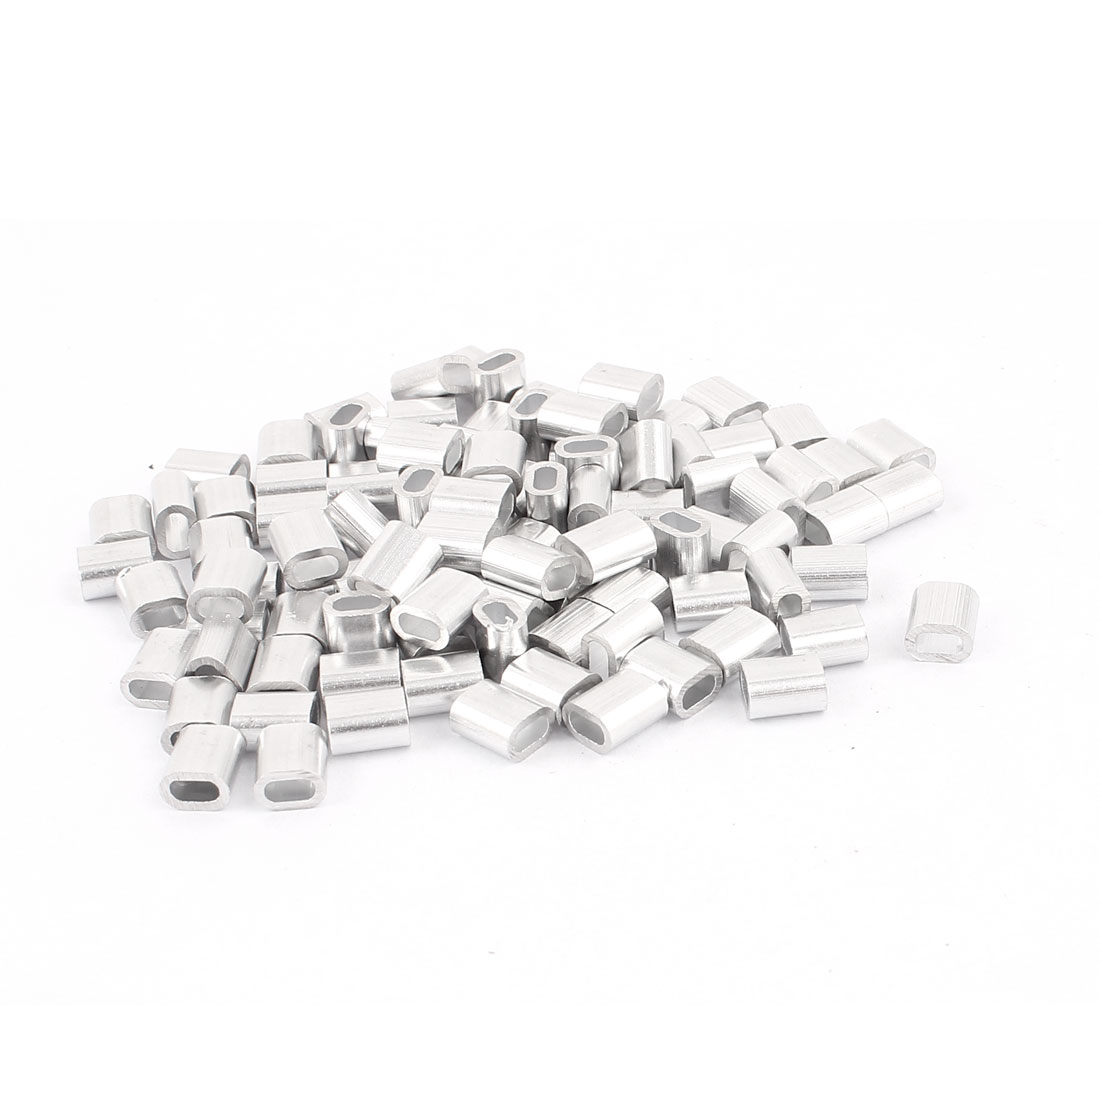 UXCELL 100 Pcs 2mm 5/64